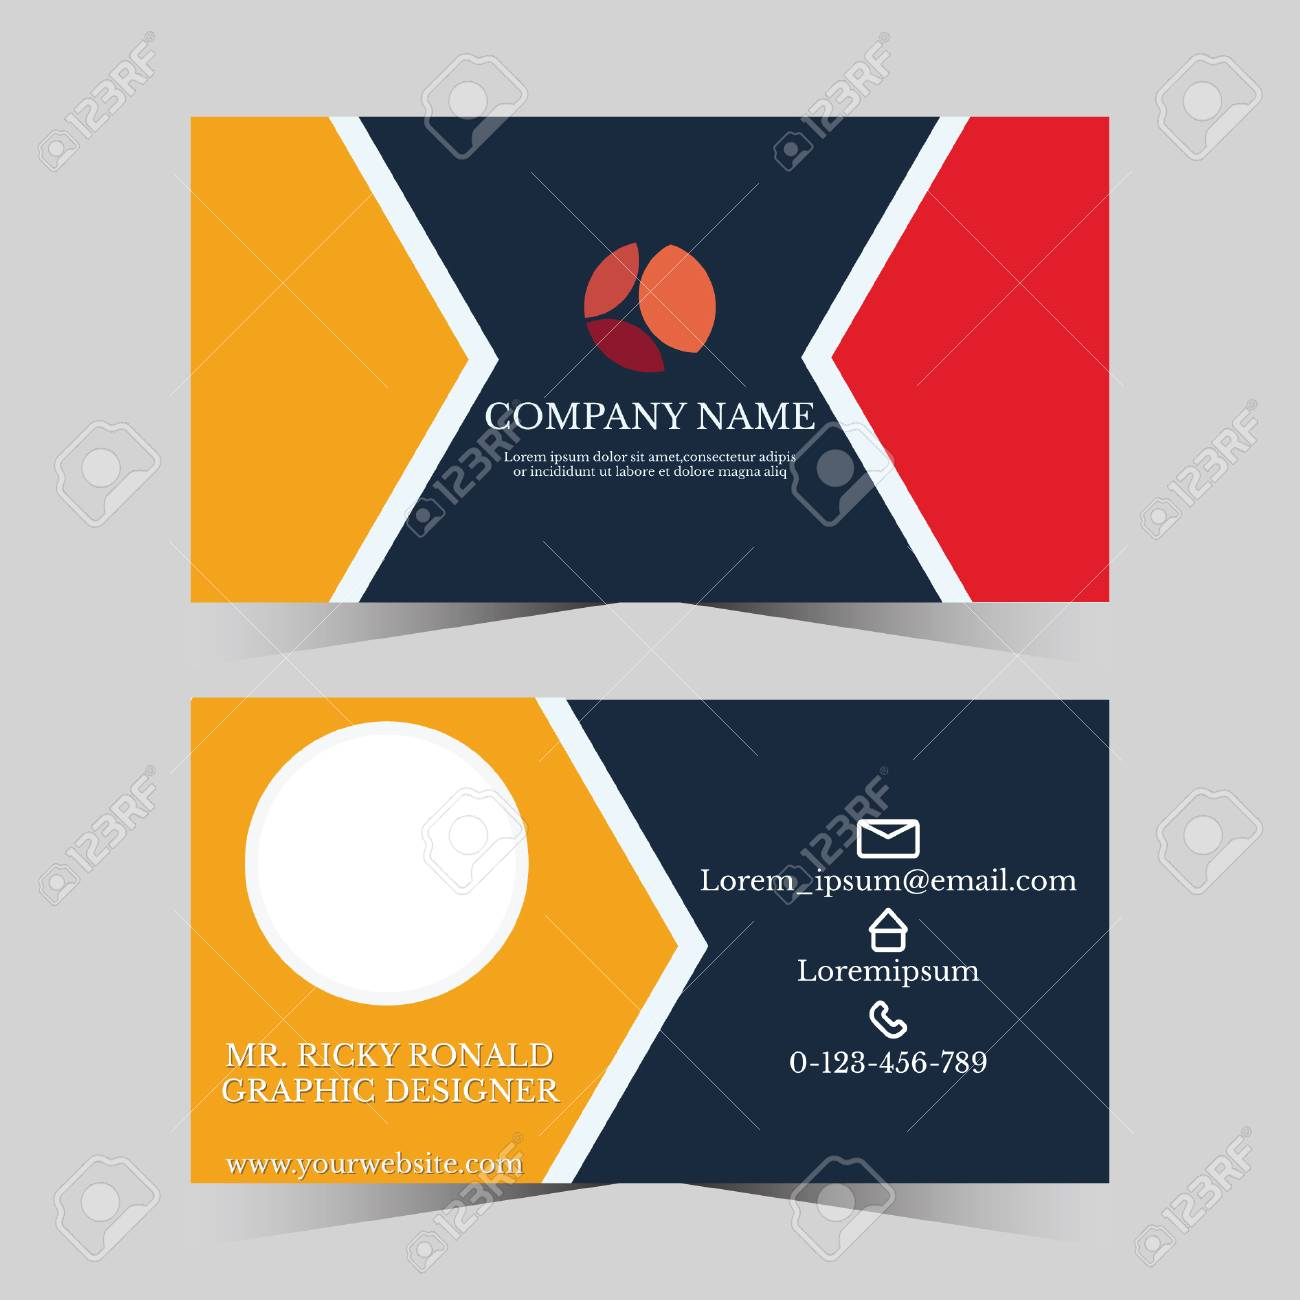 Calling Card Template For Business Man With Geometric Design In Template For Calling Card